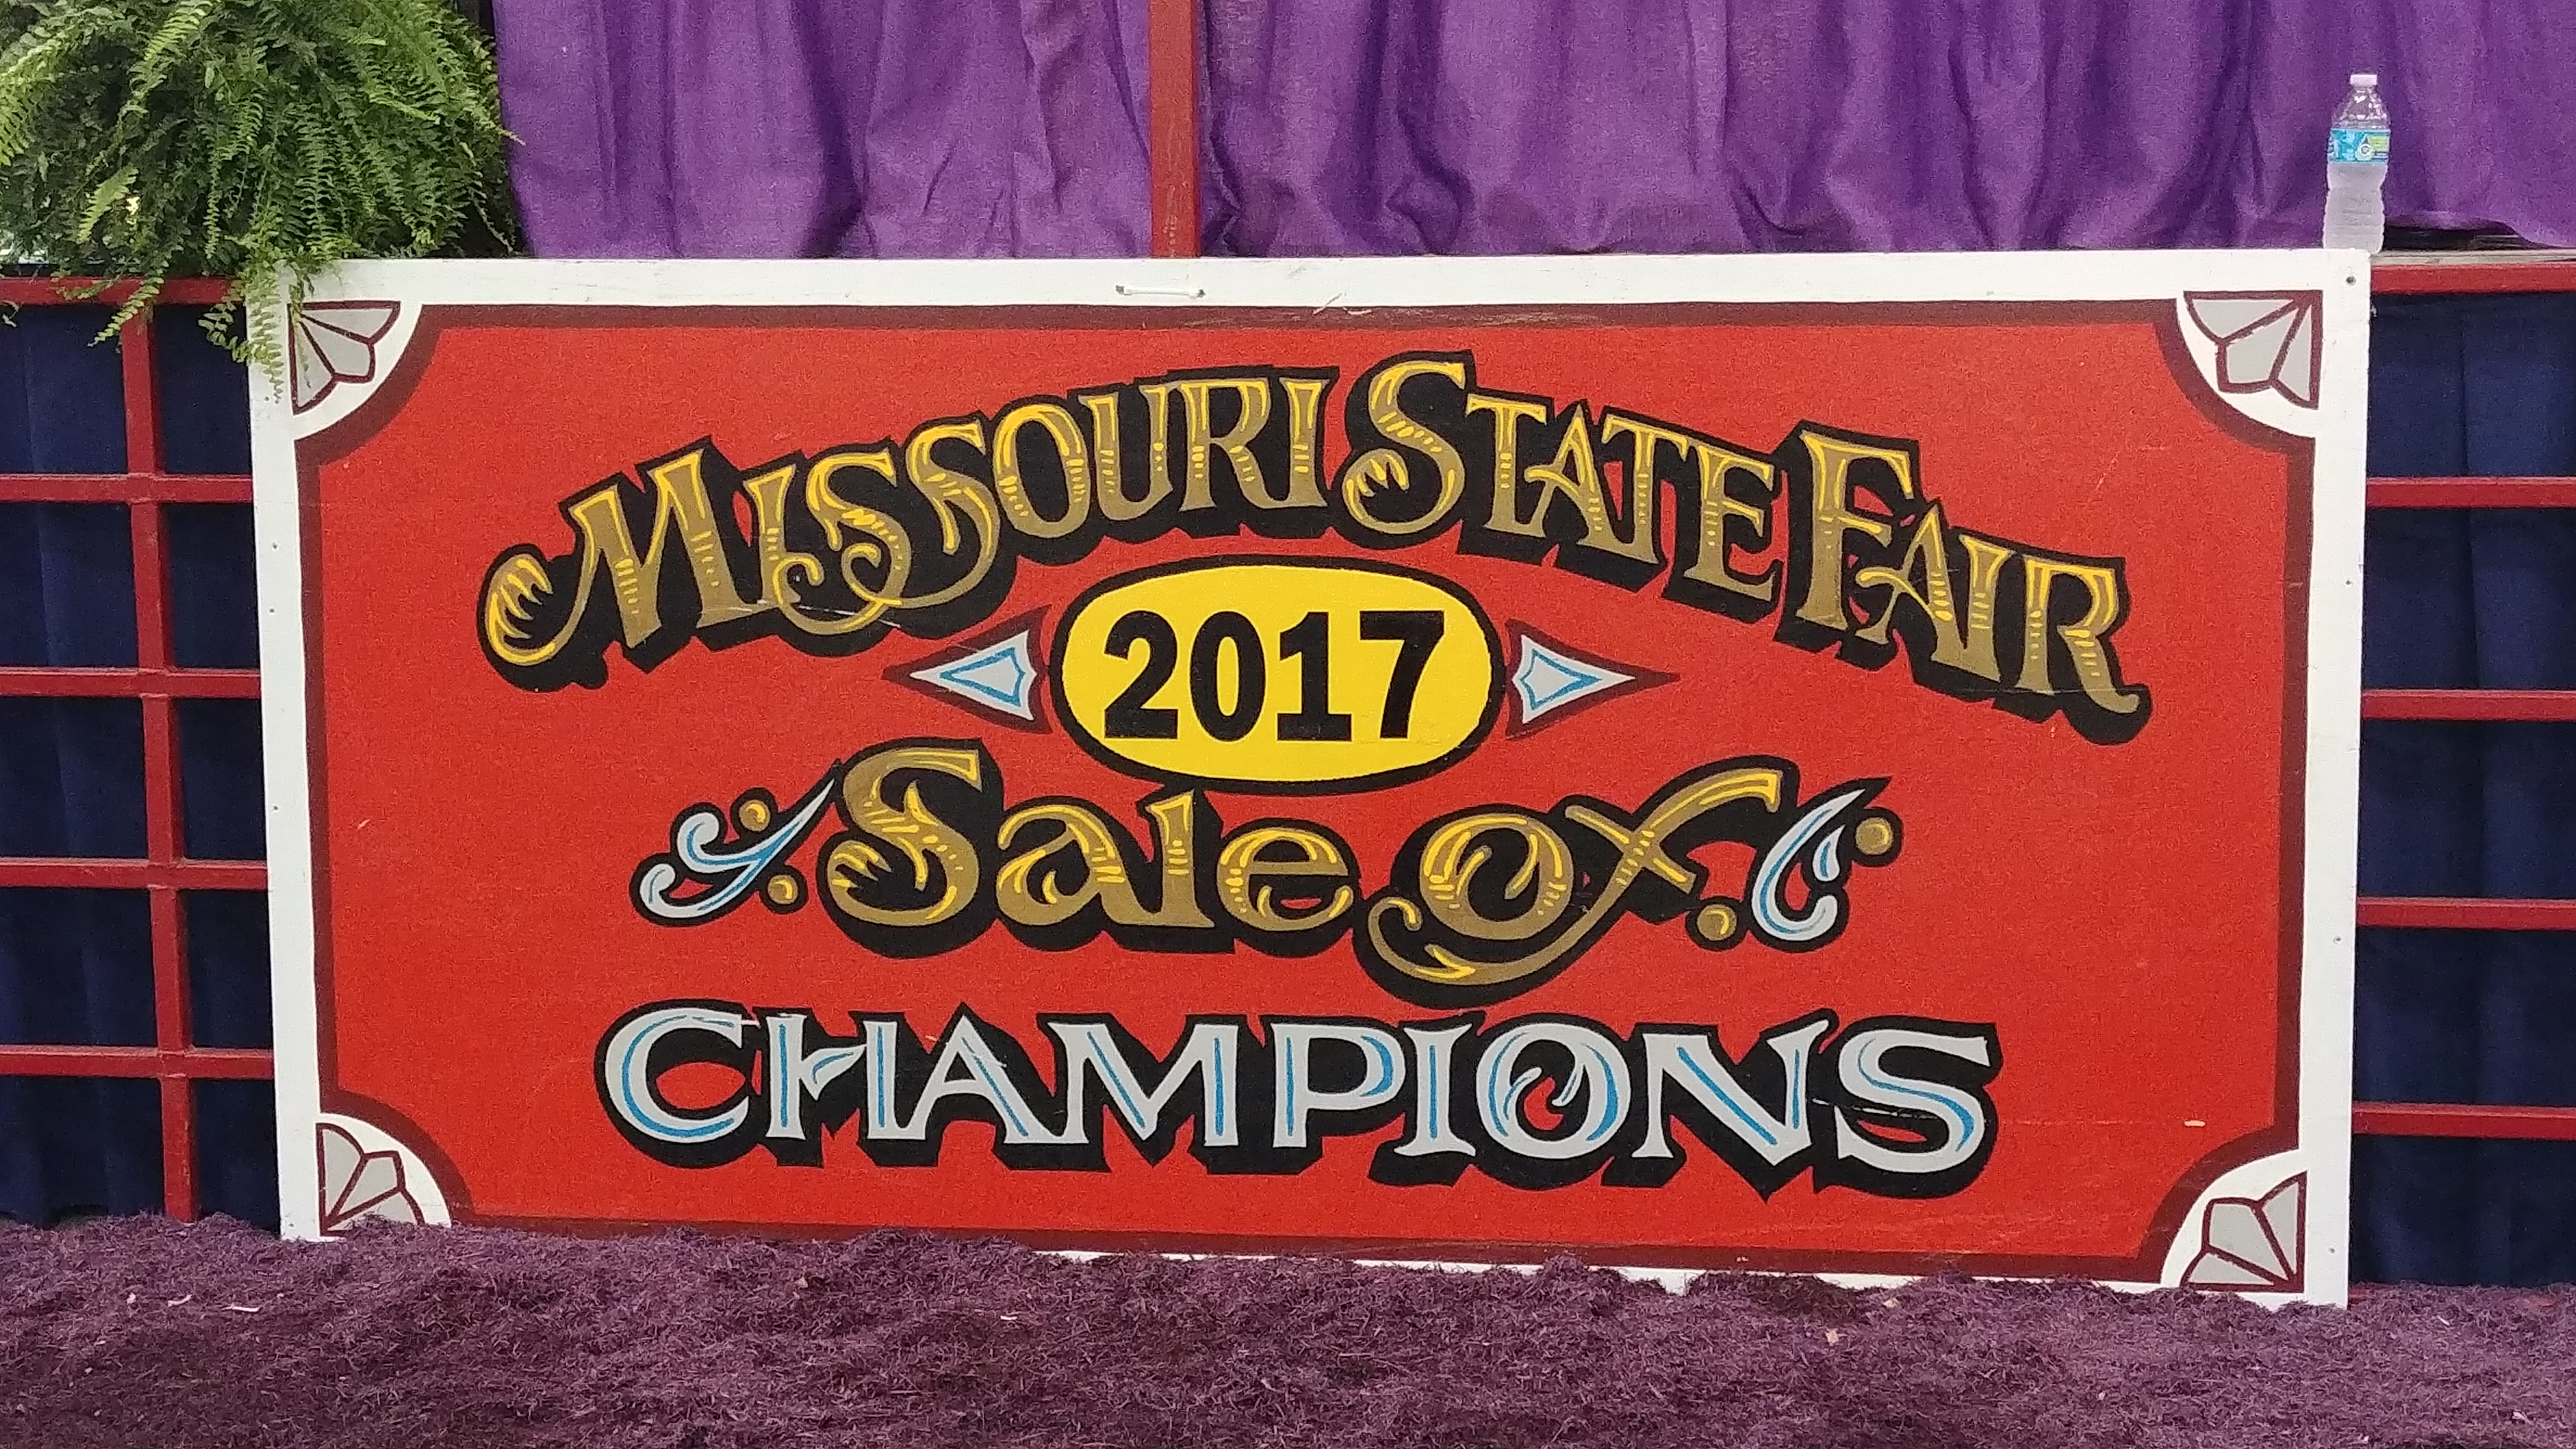 2017 Sale of Champions results